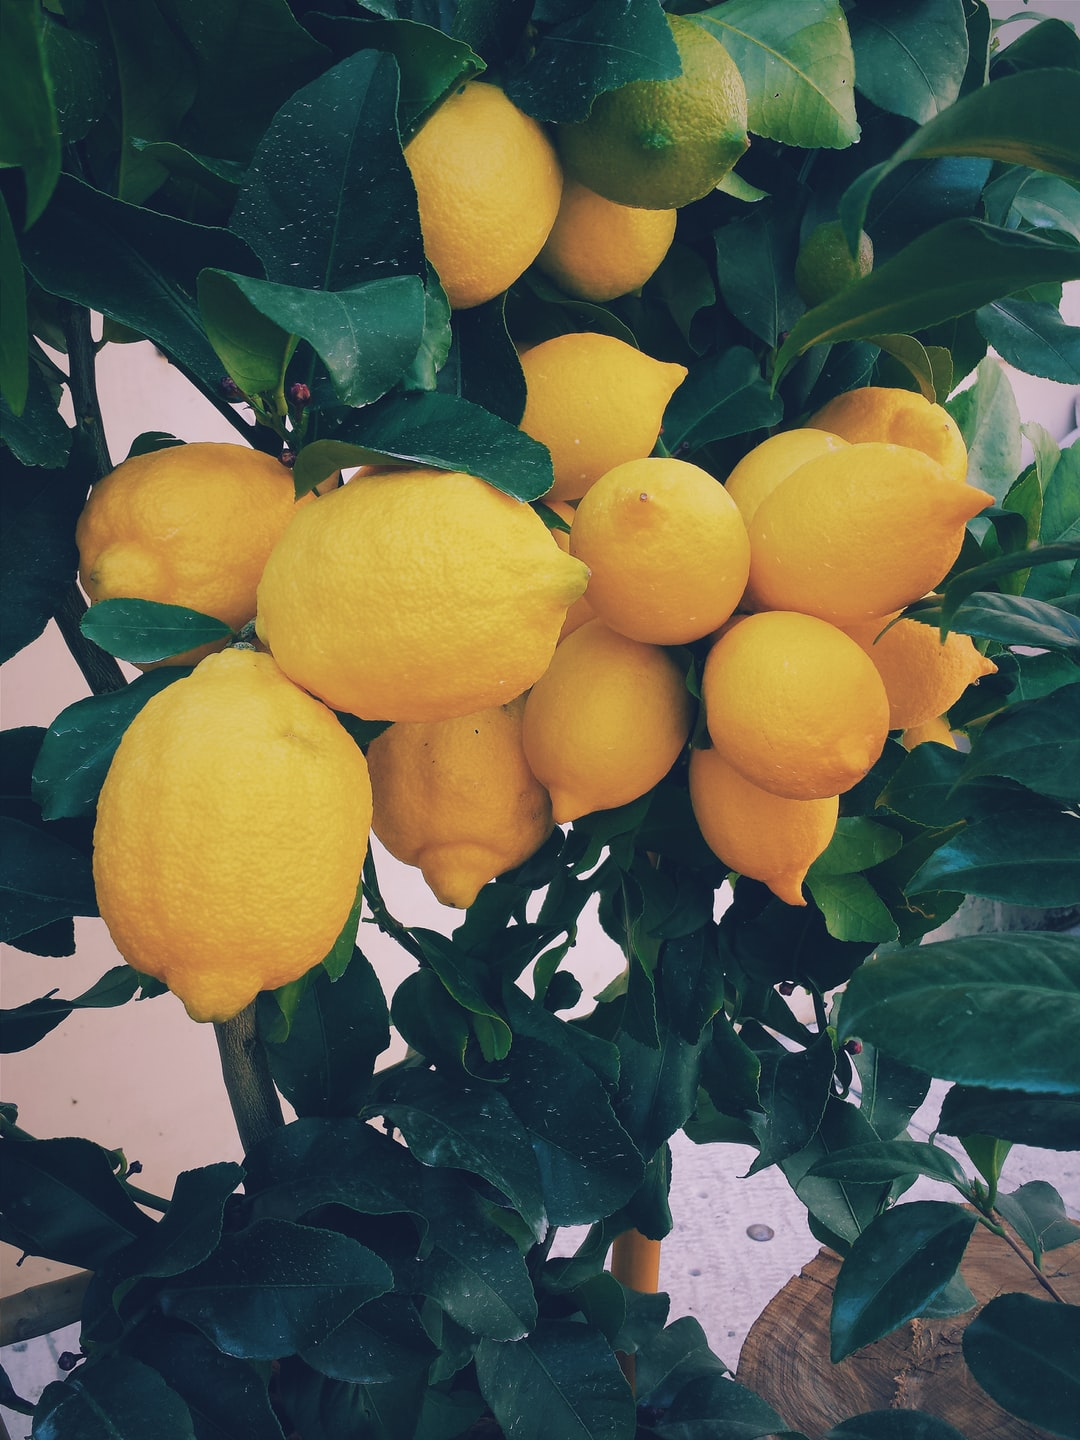 How to prune a lemon tree in your garden